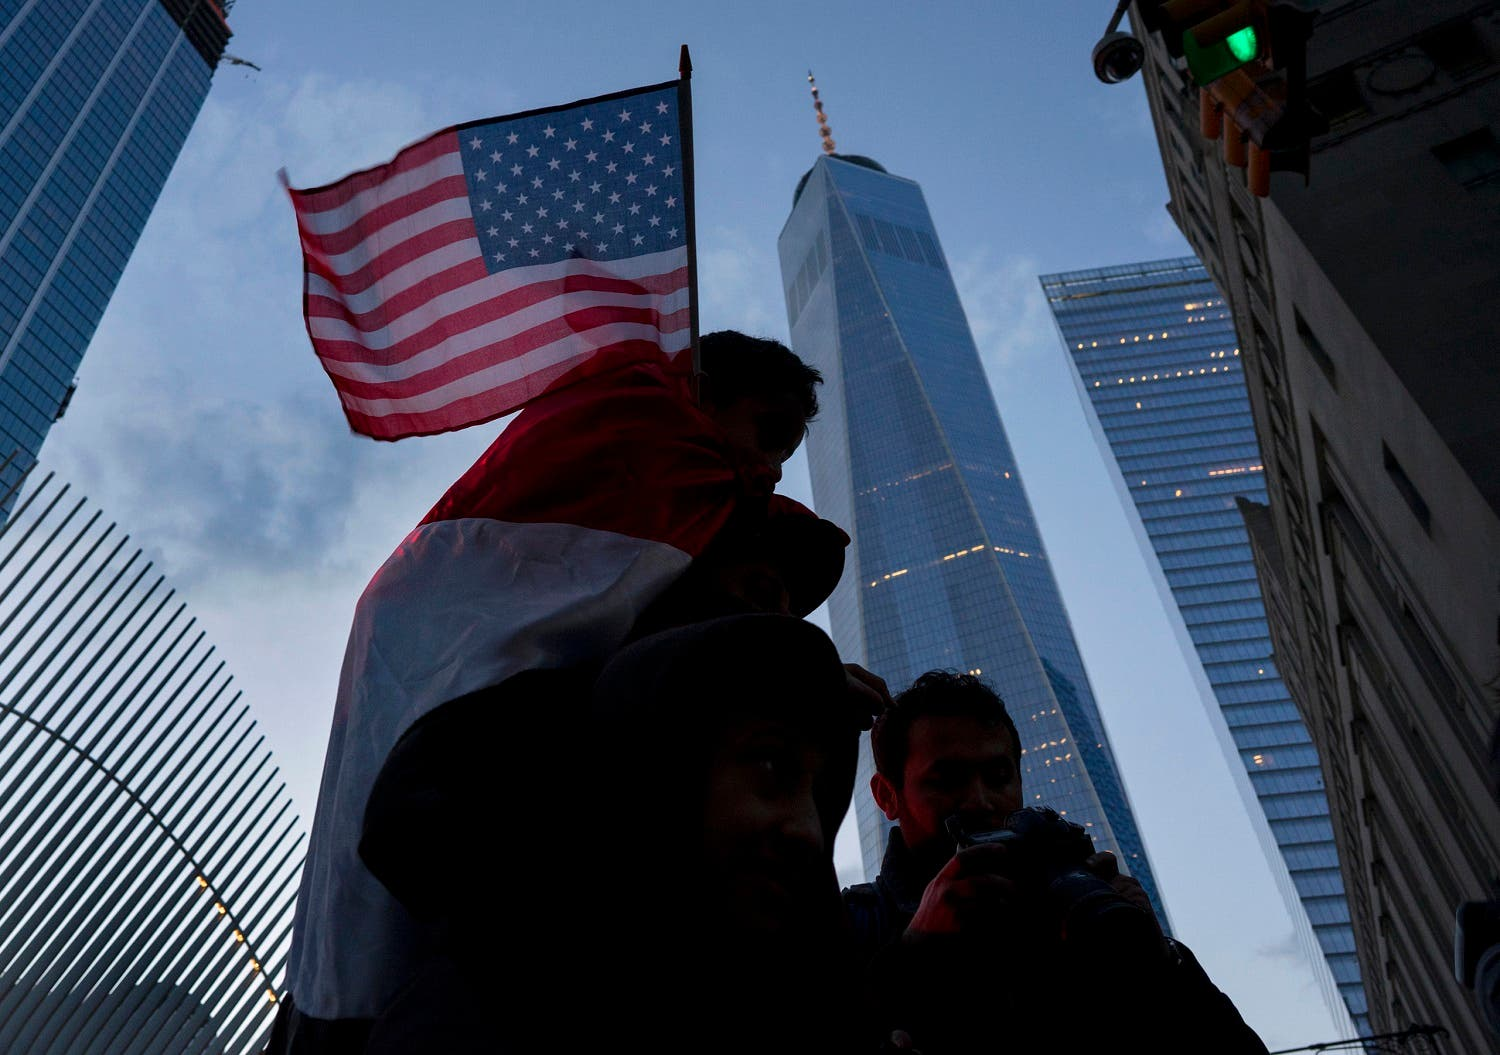 With One World Trade Center in the background, people march in New York, Sunday, Jan. 29, 2017, as they protest against President Donald Trump's executive order banning travel to the US by citizens of several countries. (AP Photo/Craig Ruttle)